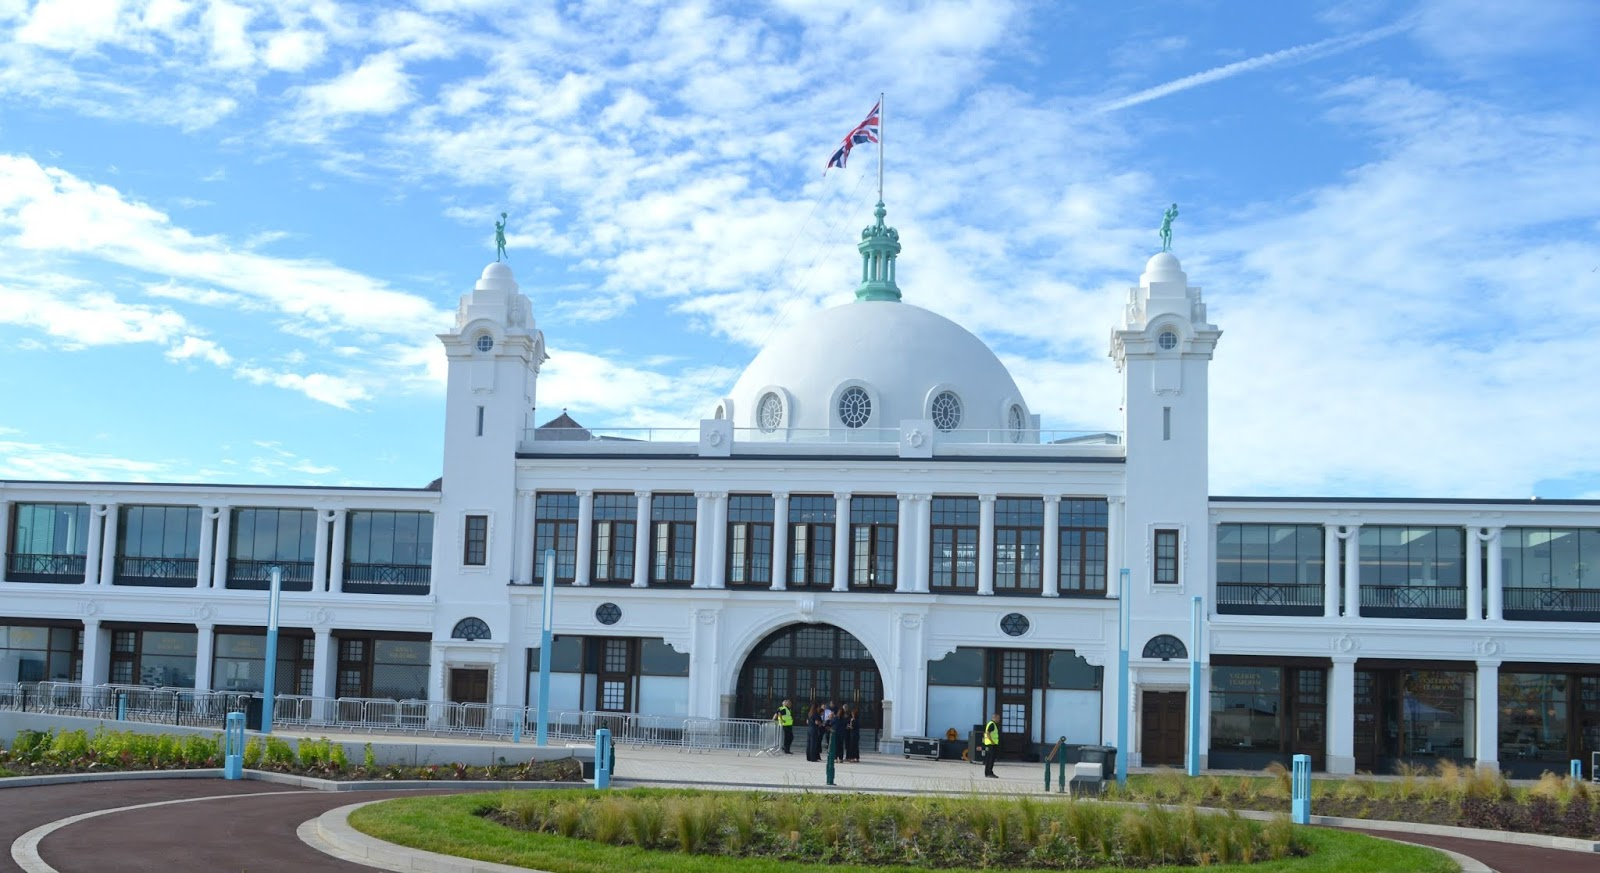 The Opening of Spanish City, Whitley Bay - What Restaurants are Inside the Dome?